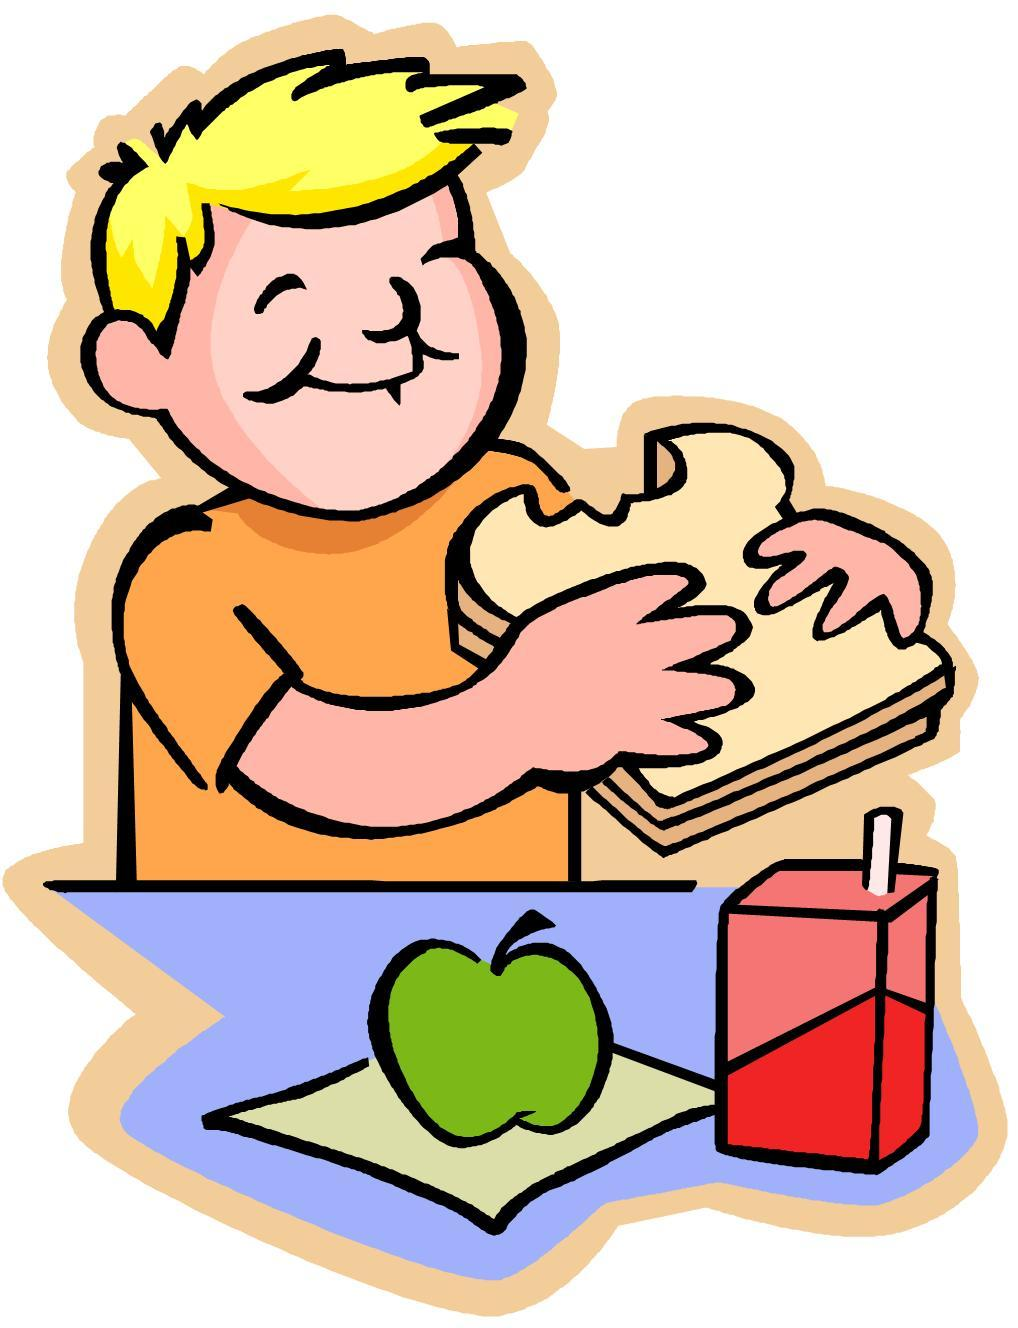 Verbs and time clipart clipart royalty free library Verb Clipart   Free download best Verb Clipart on ClipArtMag.com clipart royalty free library